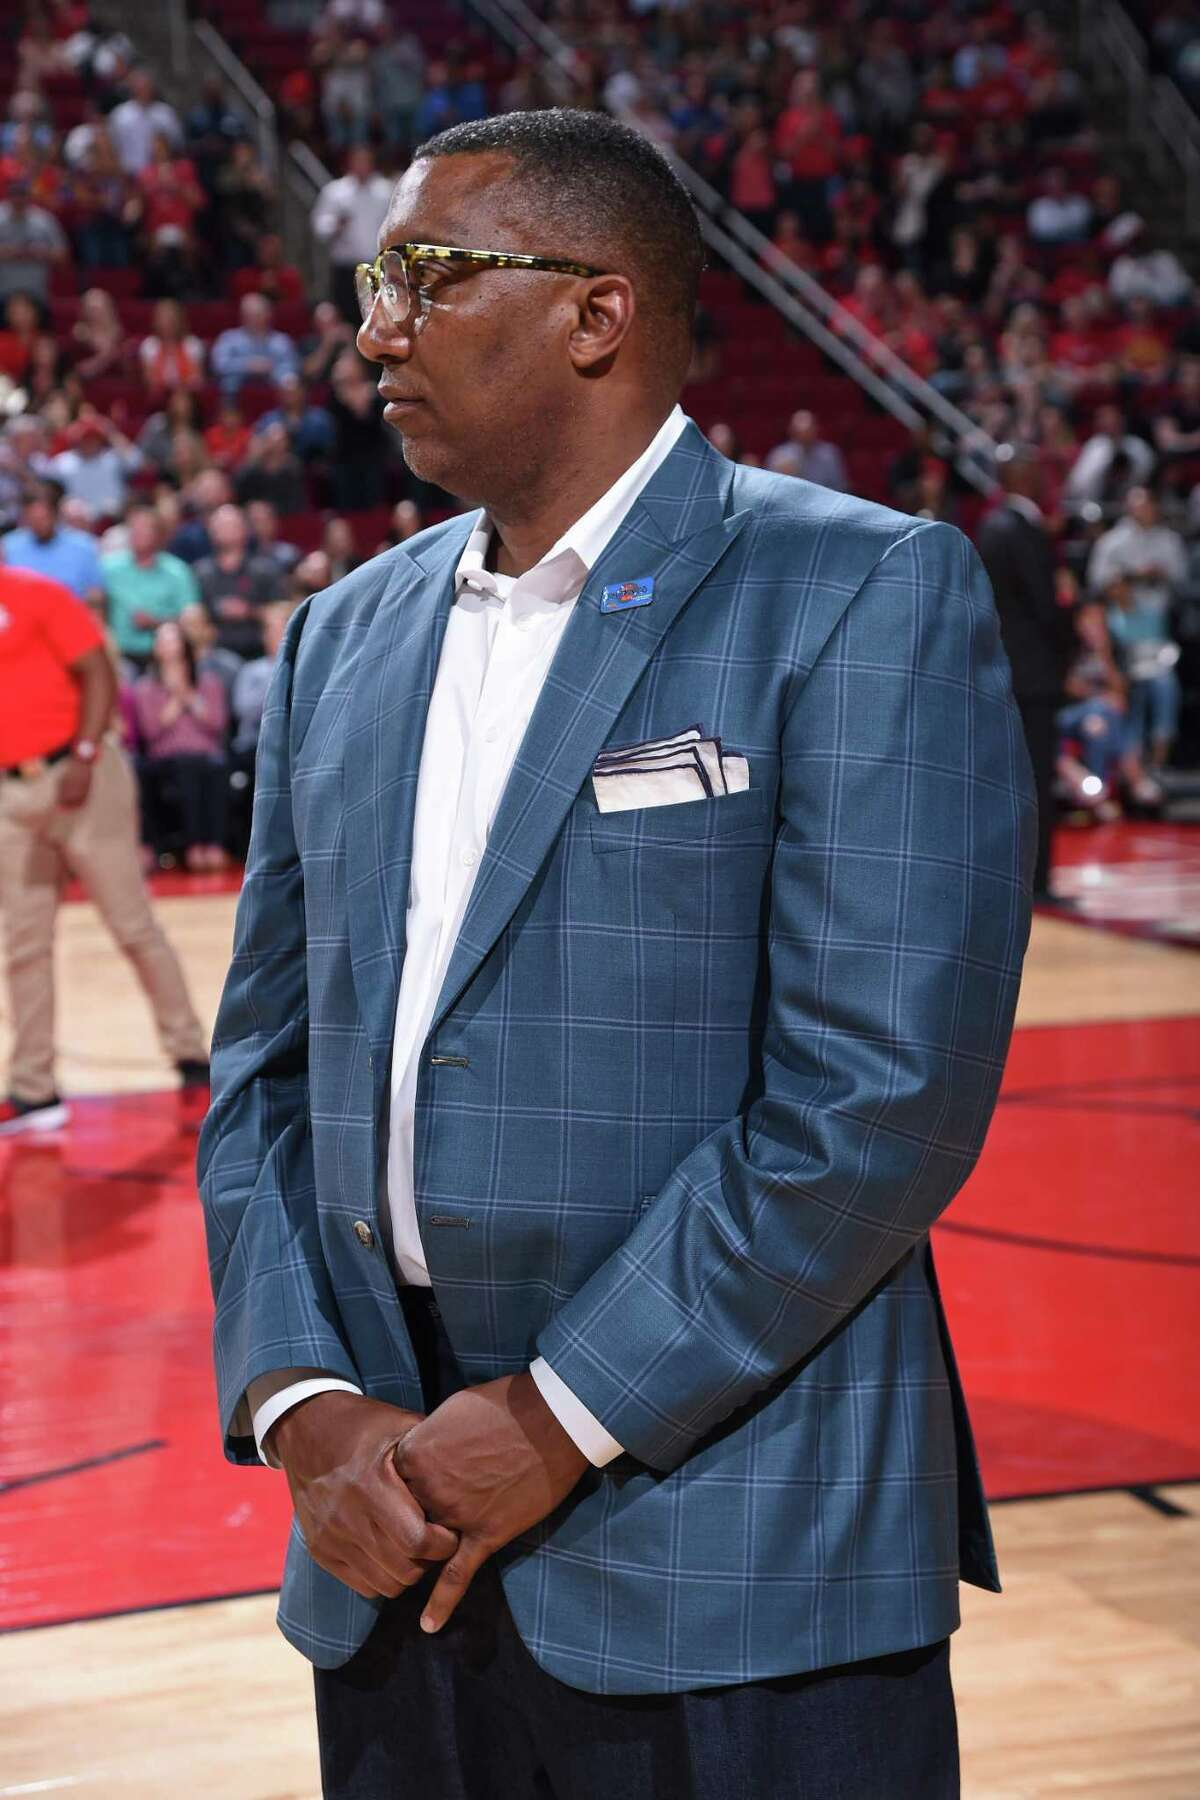 Rockets senior VP for basketball operations Keith Jones is the voice on the other end of the phone that connects Rockets players in times of uncertainty.